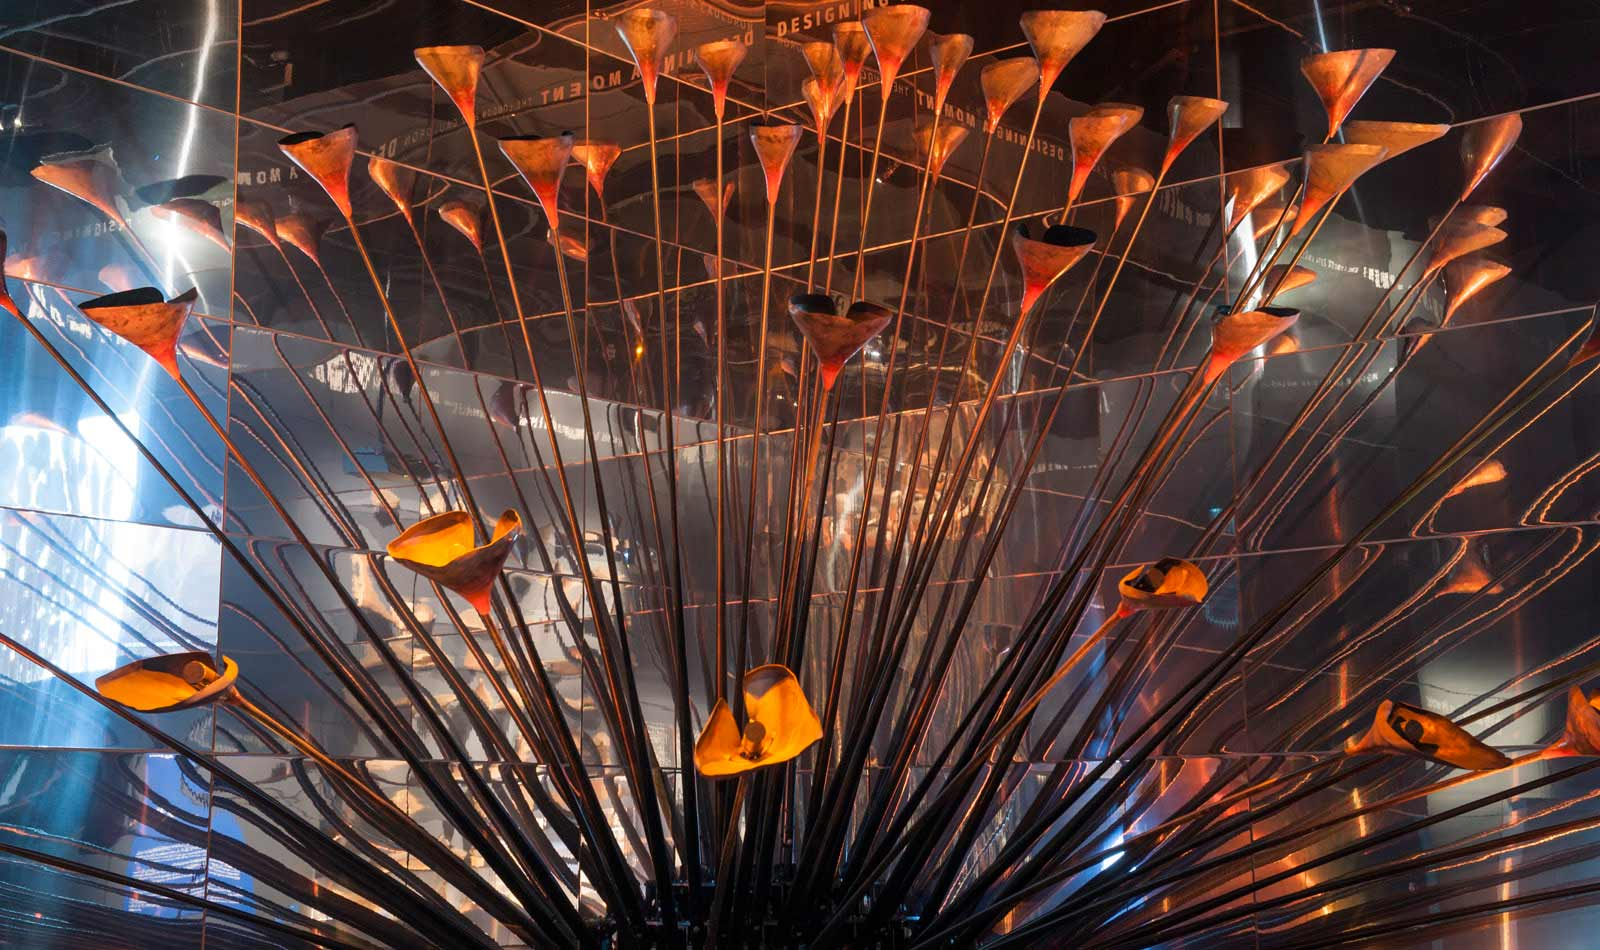 The London 2012 Olympic Cauldron on display with its petals open and splayed.